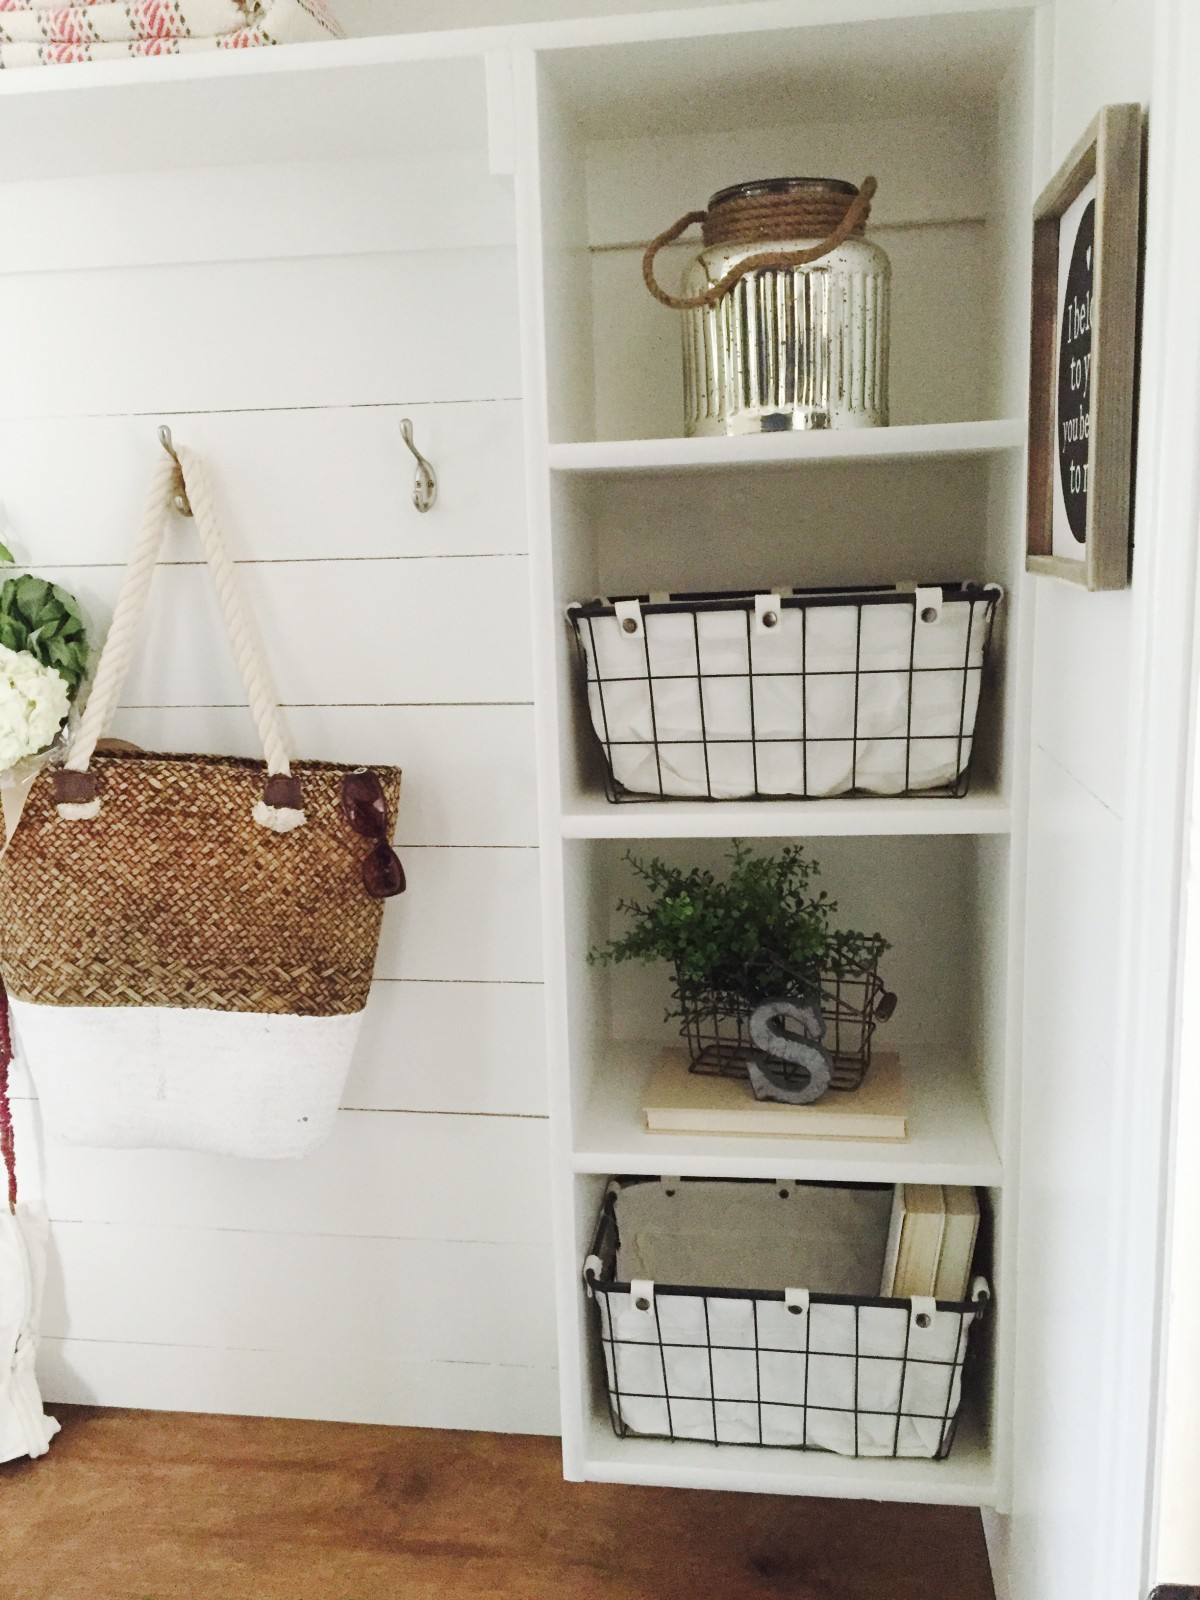 From hallway closet to mudroom, this functional and stylish farmhouse mudroom is perfect!